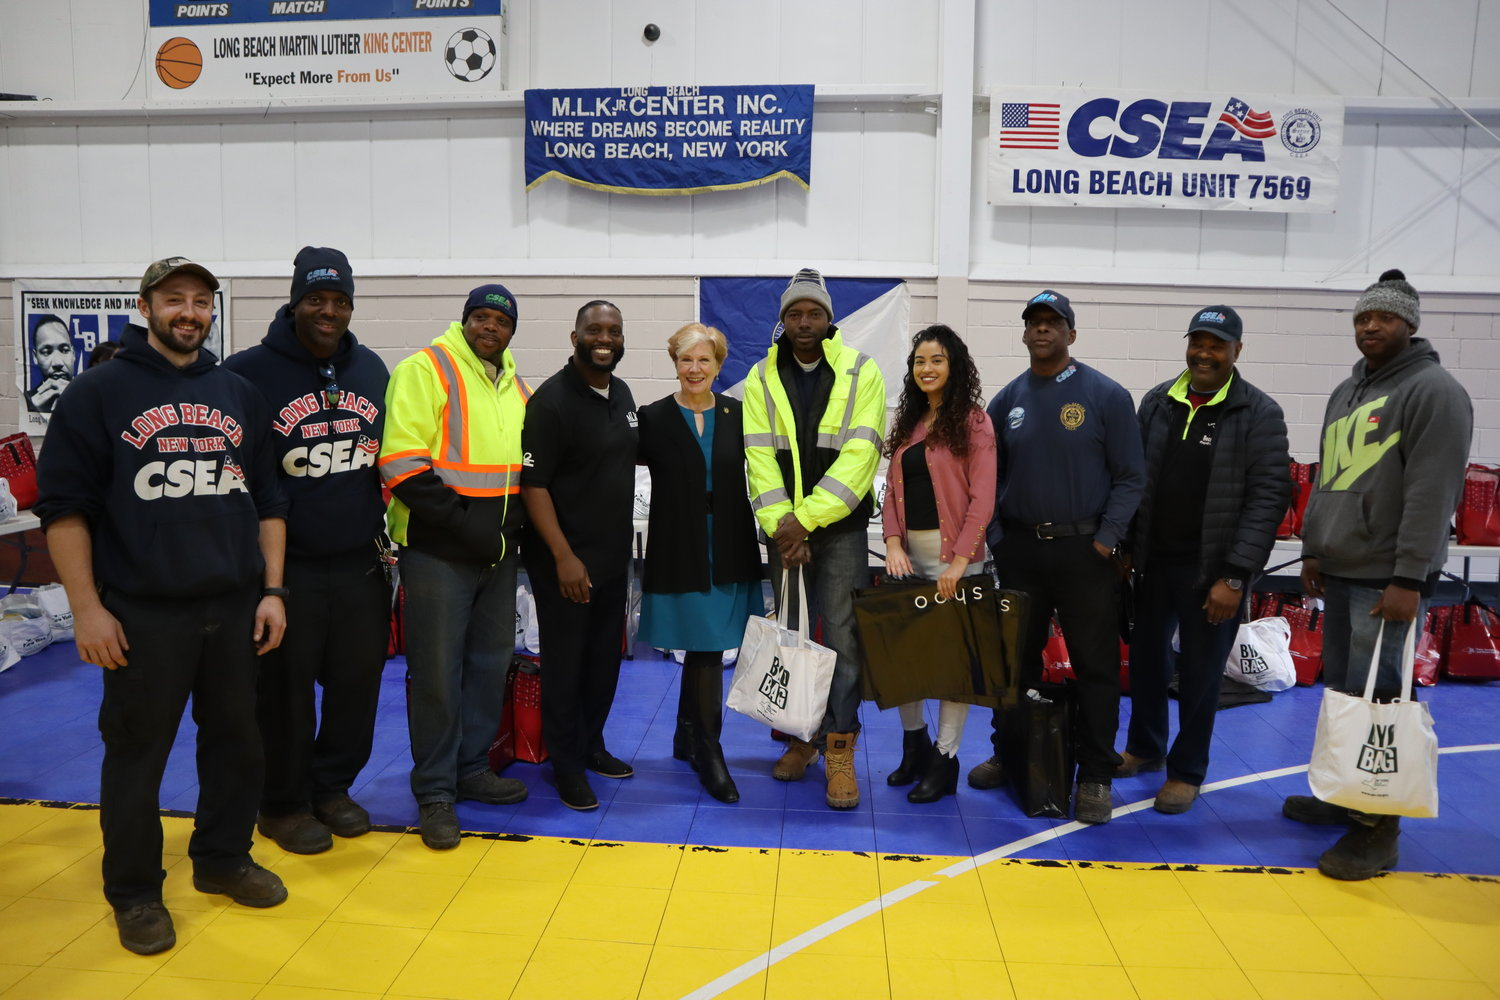 James Hodge, fourth from left, and state Labor Commissioner Roberta Reardon, fifth from left, were joined by city employees who volunteered at the turkey giveaway on Nov. 26.